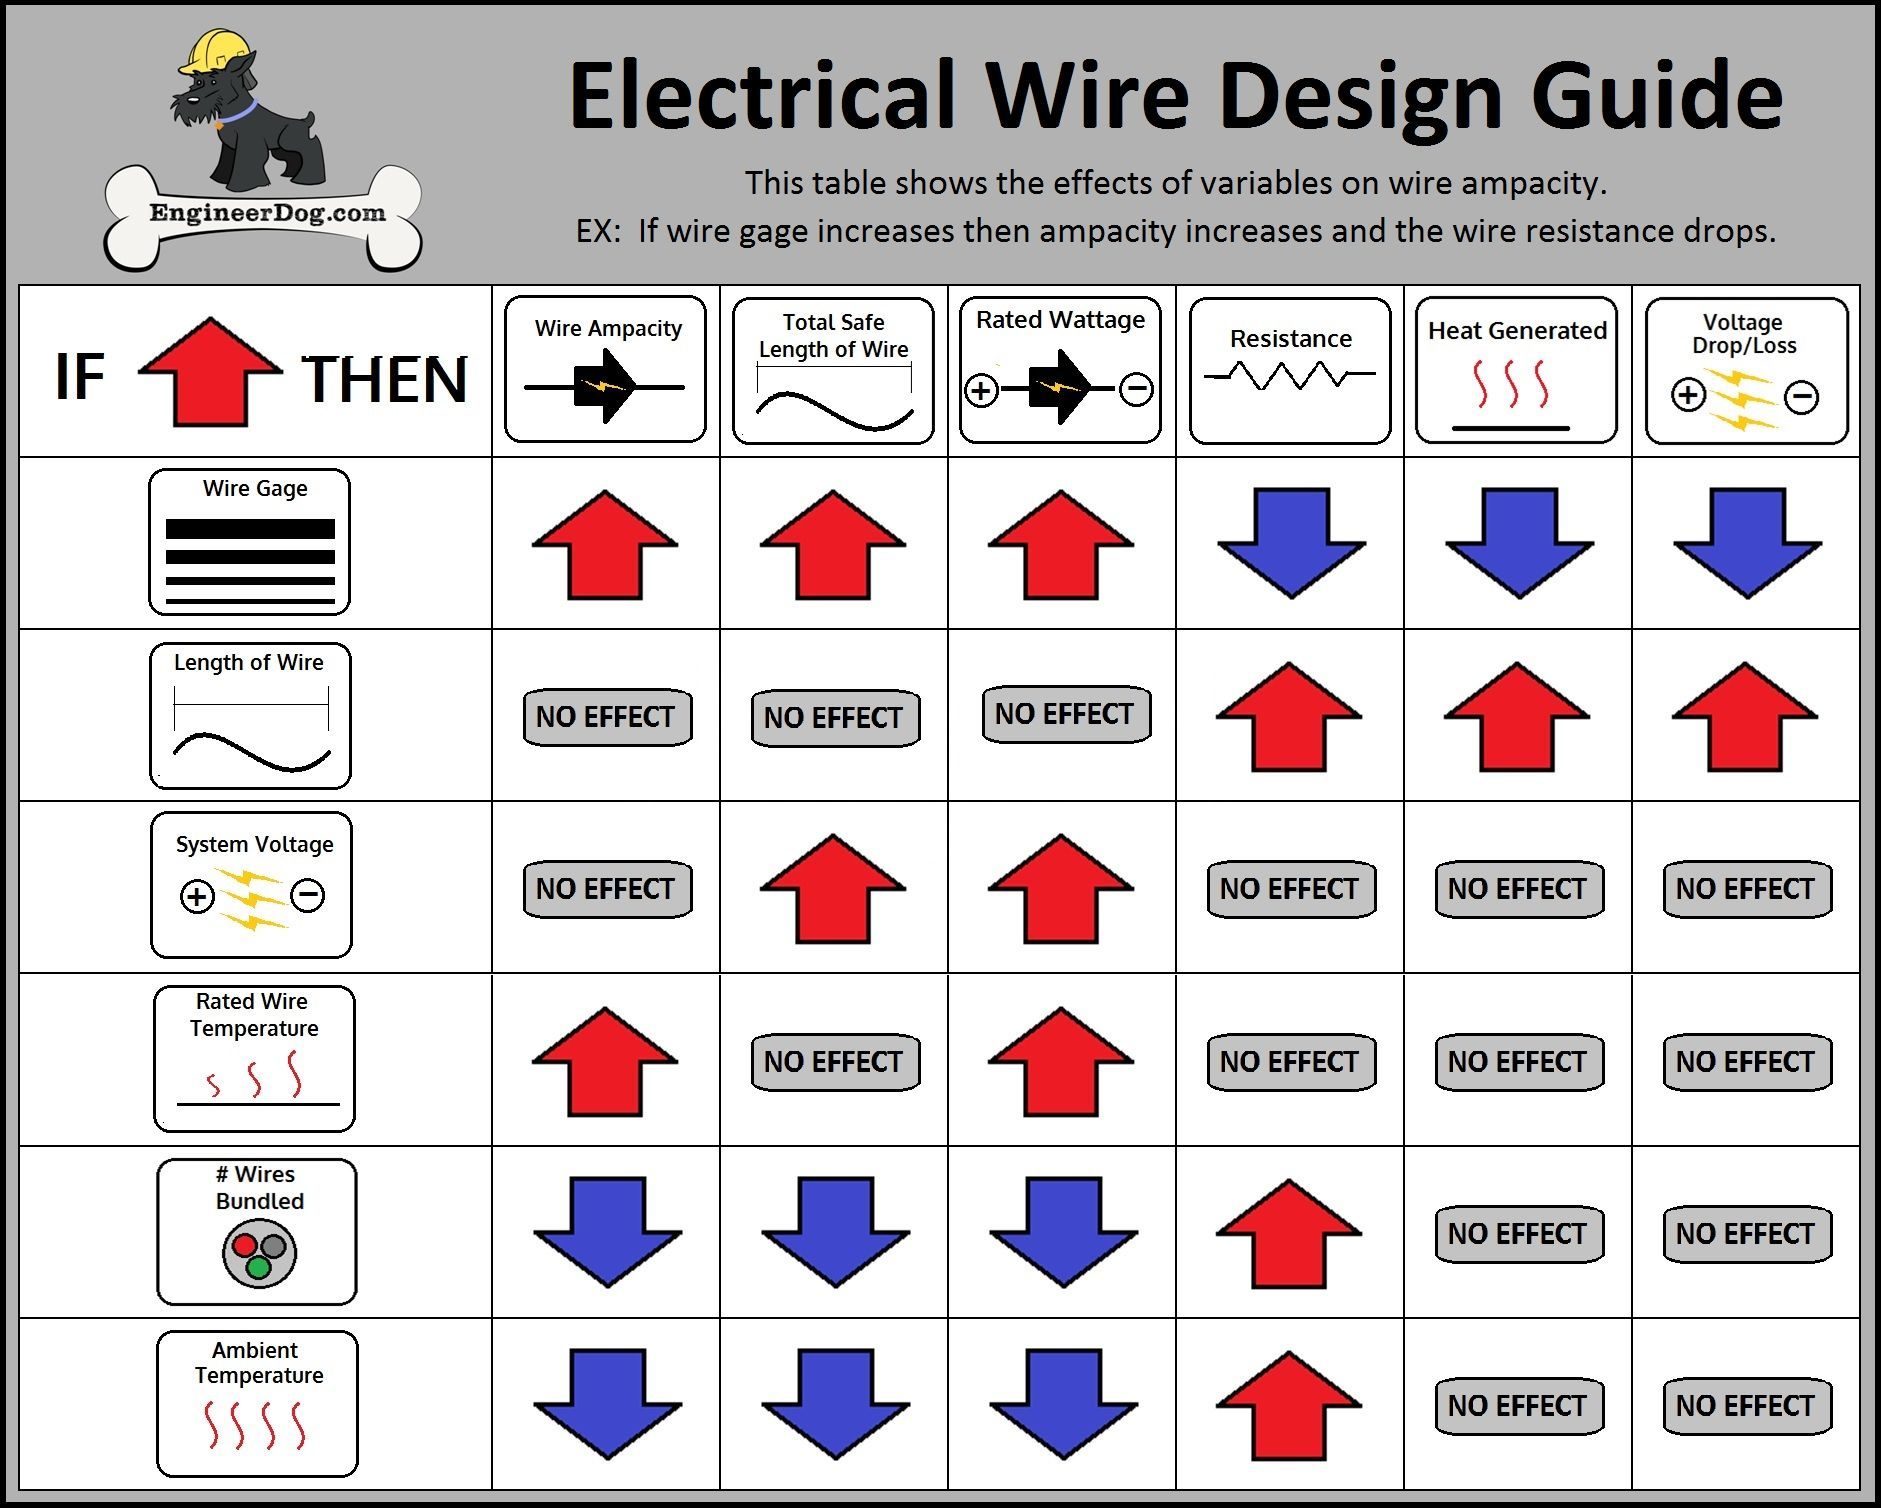 home wiring gauge guides wiring diagram expert house wiring gauge chart electrical wire design guide see [ 1881 x 1508 Pixel ]